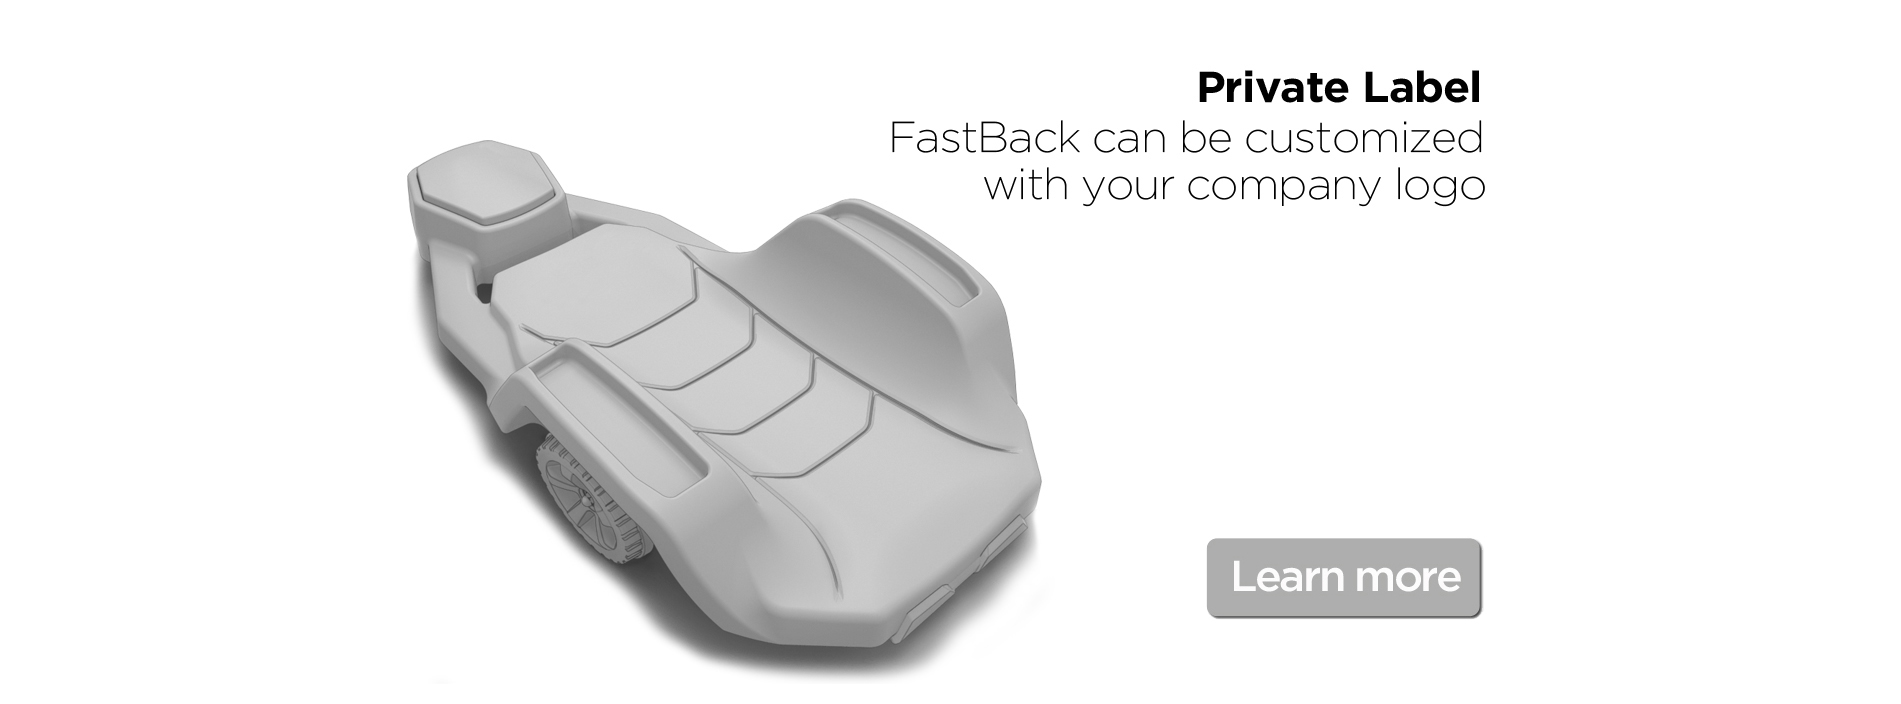 speed-fastbackprivatelabelpage_corrected